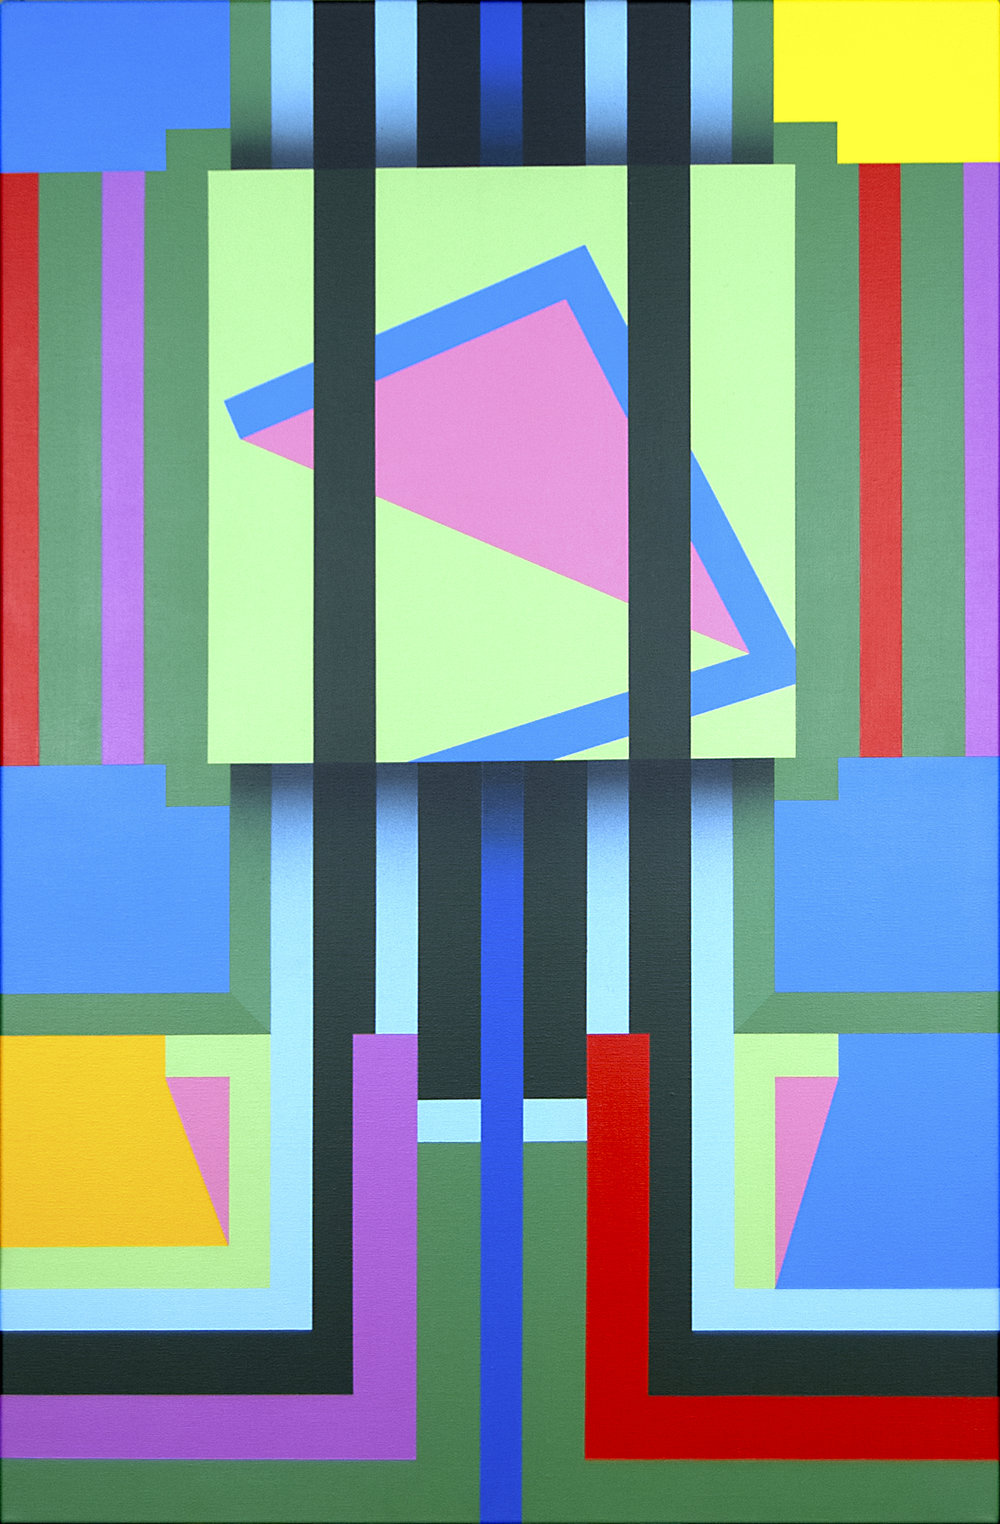 Graham King, The Artists Studio, Acrylic on canvas, 91.4cm x 61cm x 1.6cm